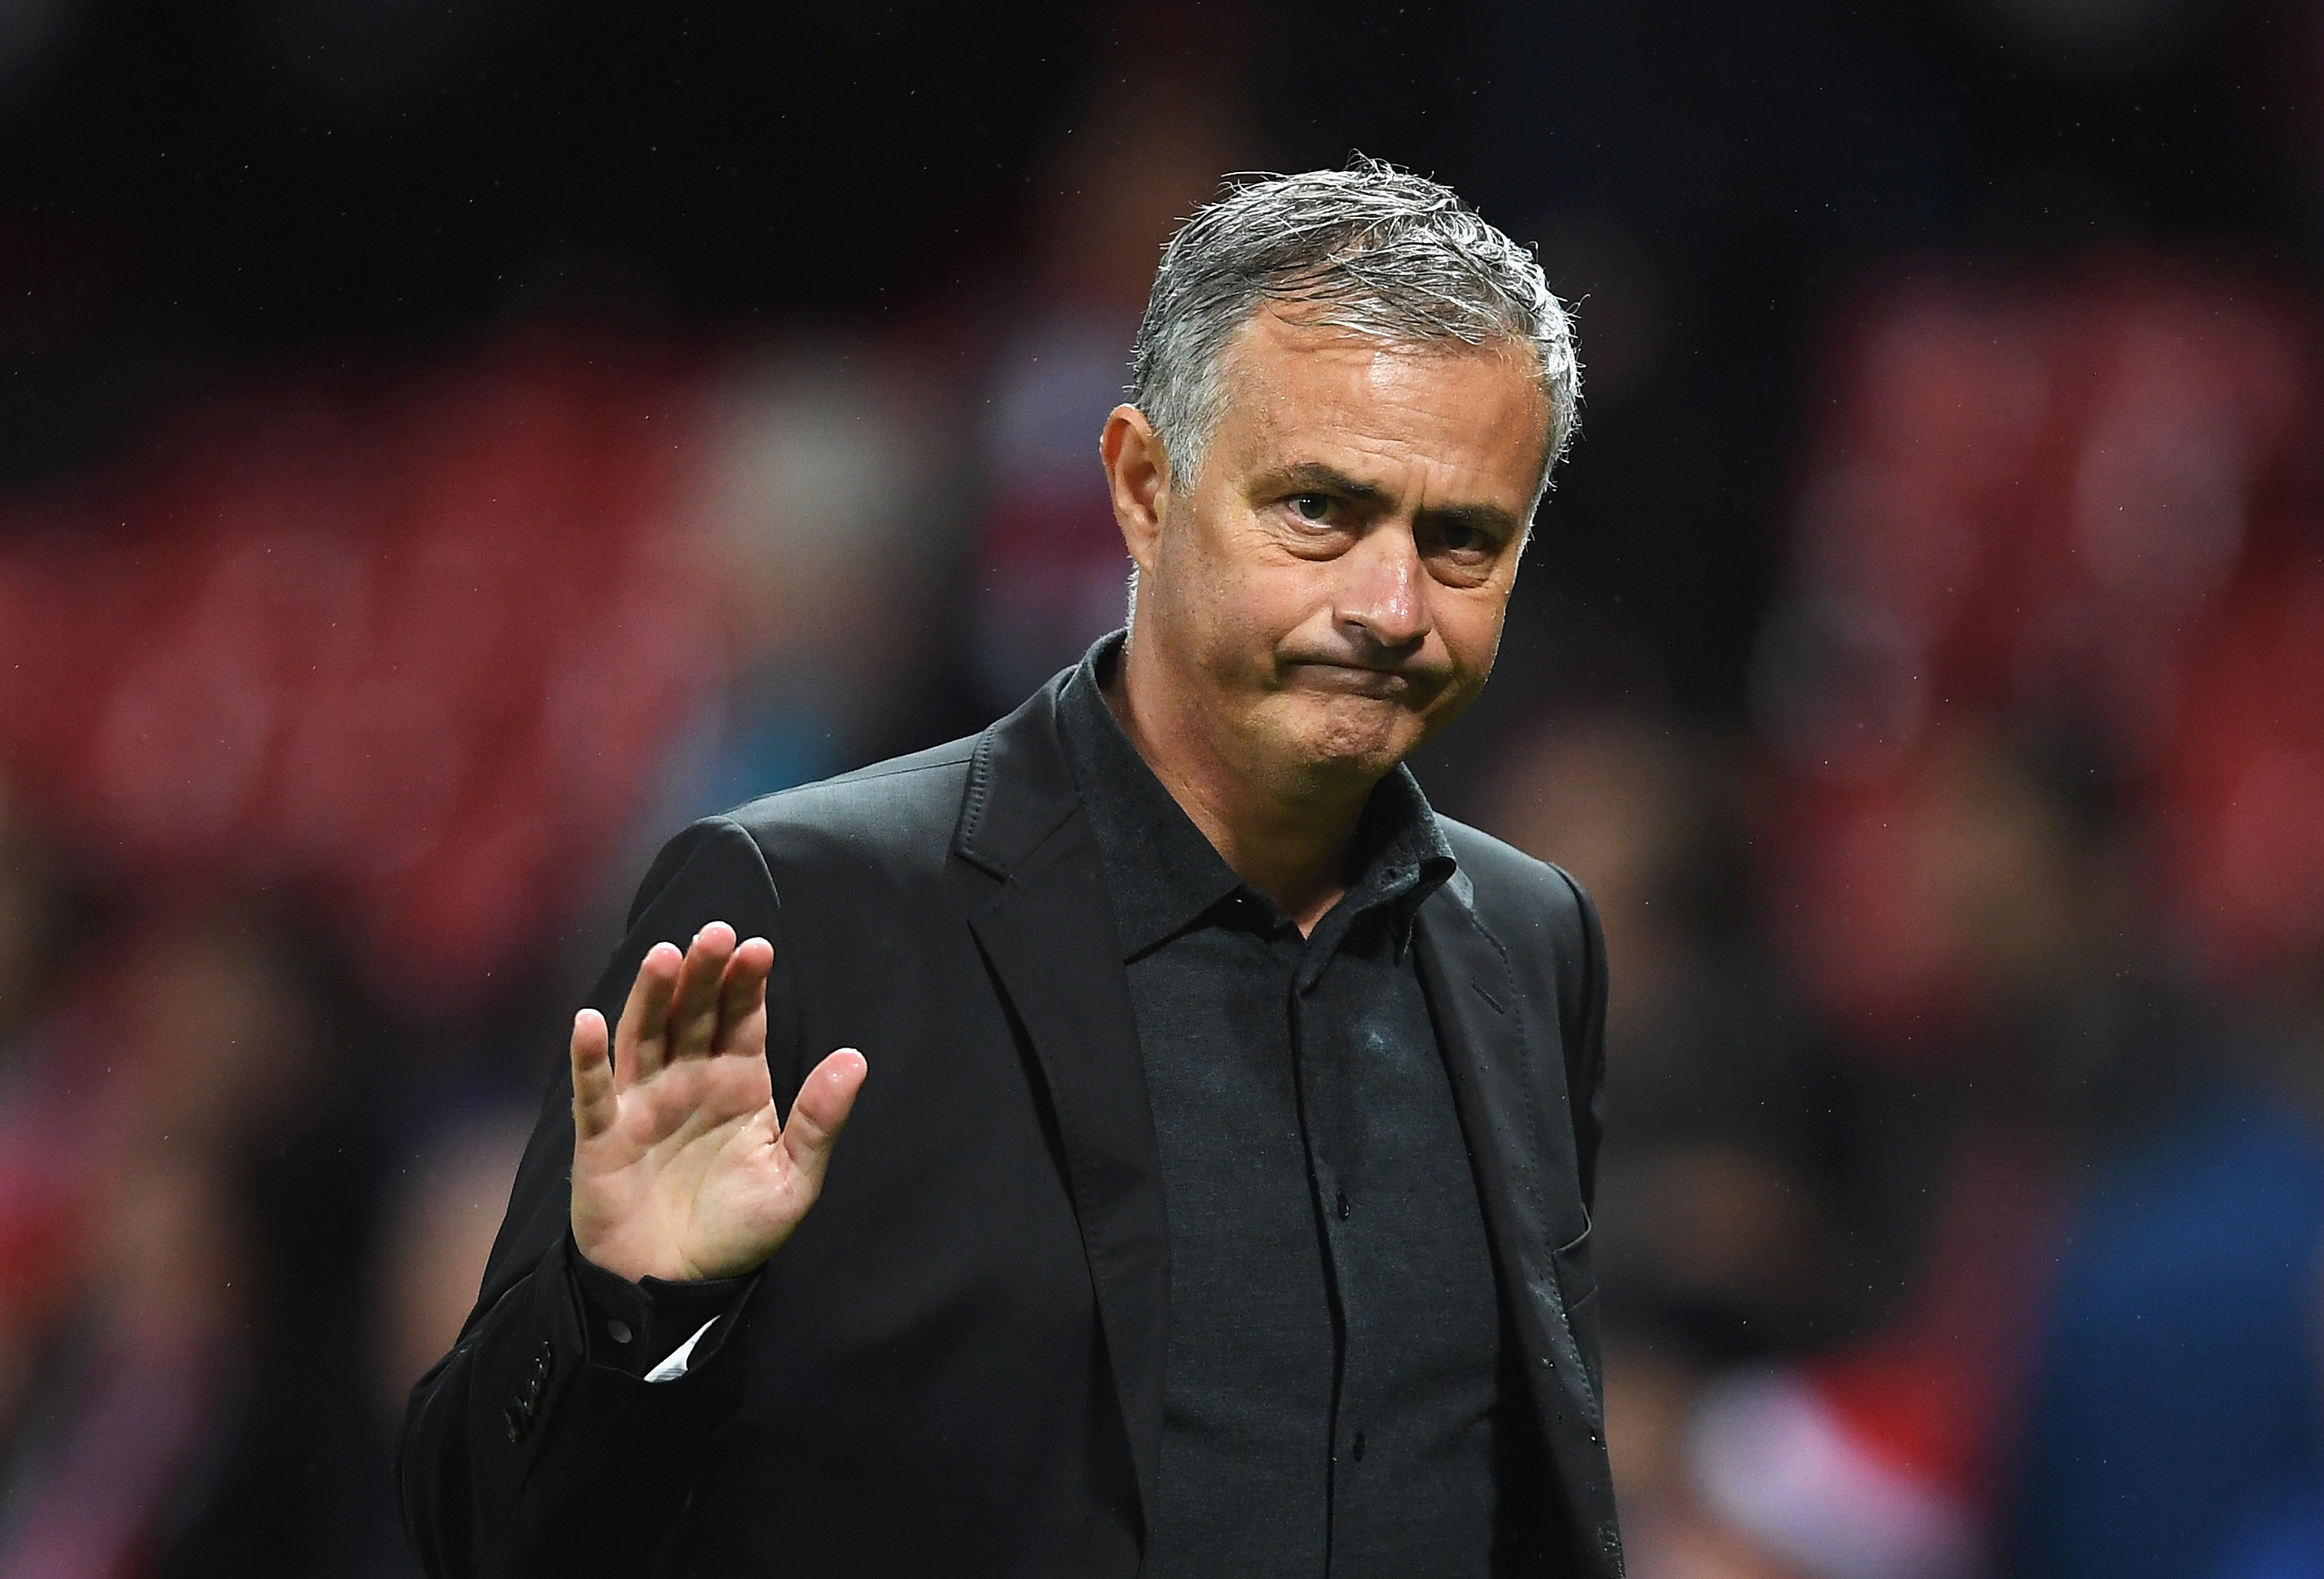 Mourinho suggested United should have signed Maguire when he was at the Old Trafford helm